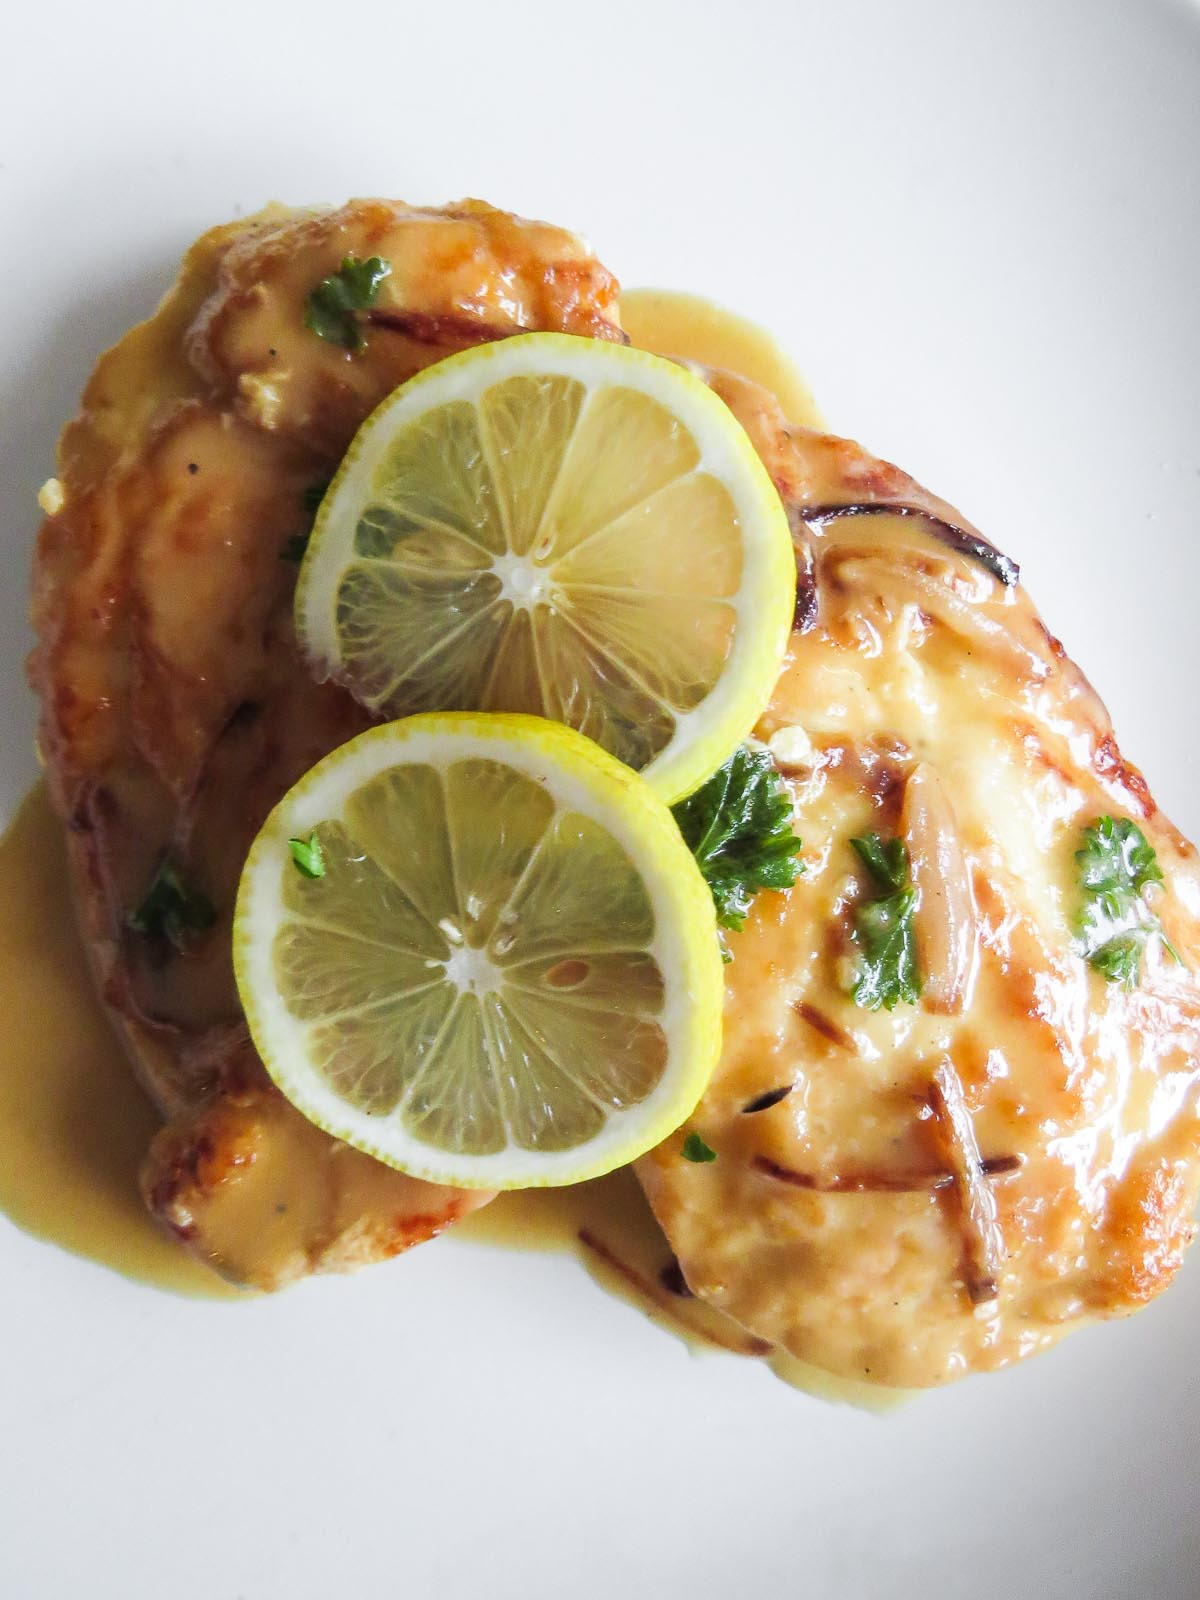 30 Minute Chicken Piccata for Two - This 30 minute chicken piccata for two recipe is easy, fast and tasty! Perfect for date night or a weeknight - because tasty doesn't have to take long! Plus it stars two favourites: white wine and lemon!